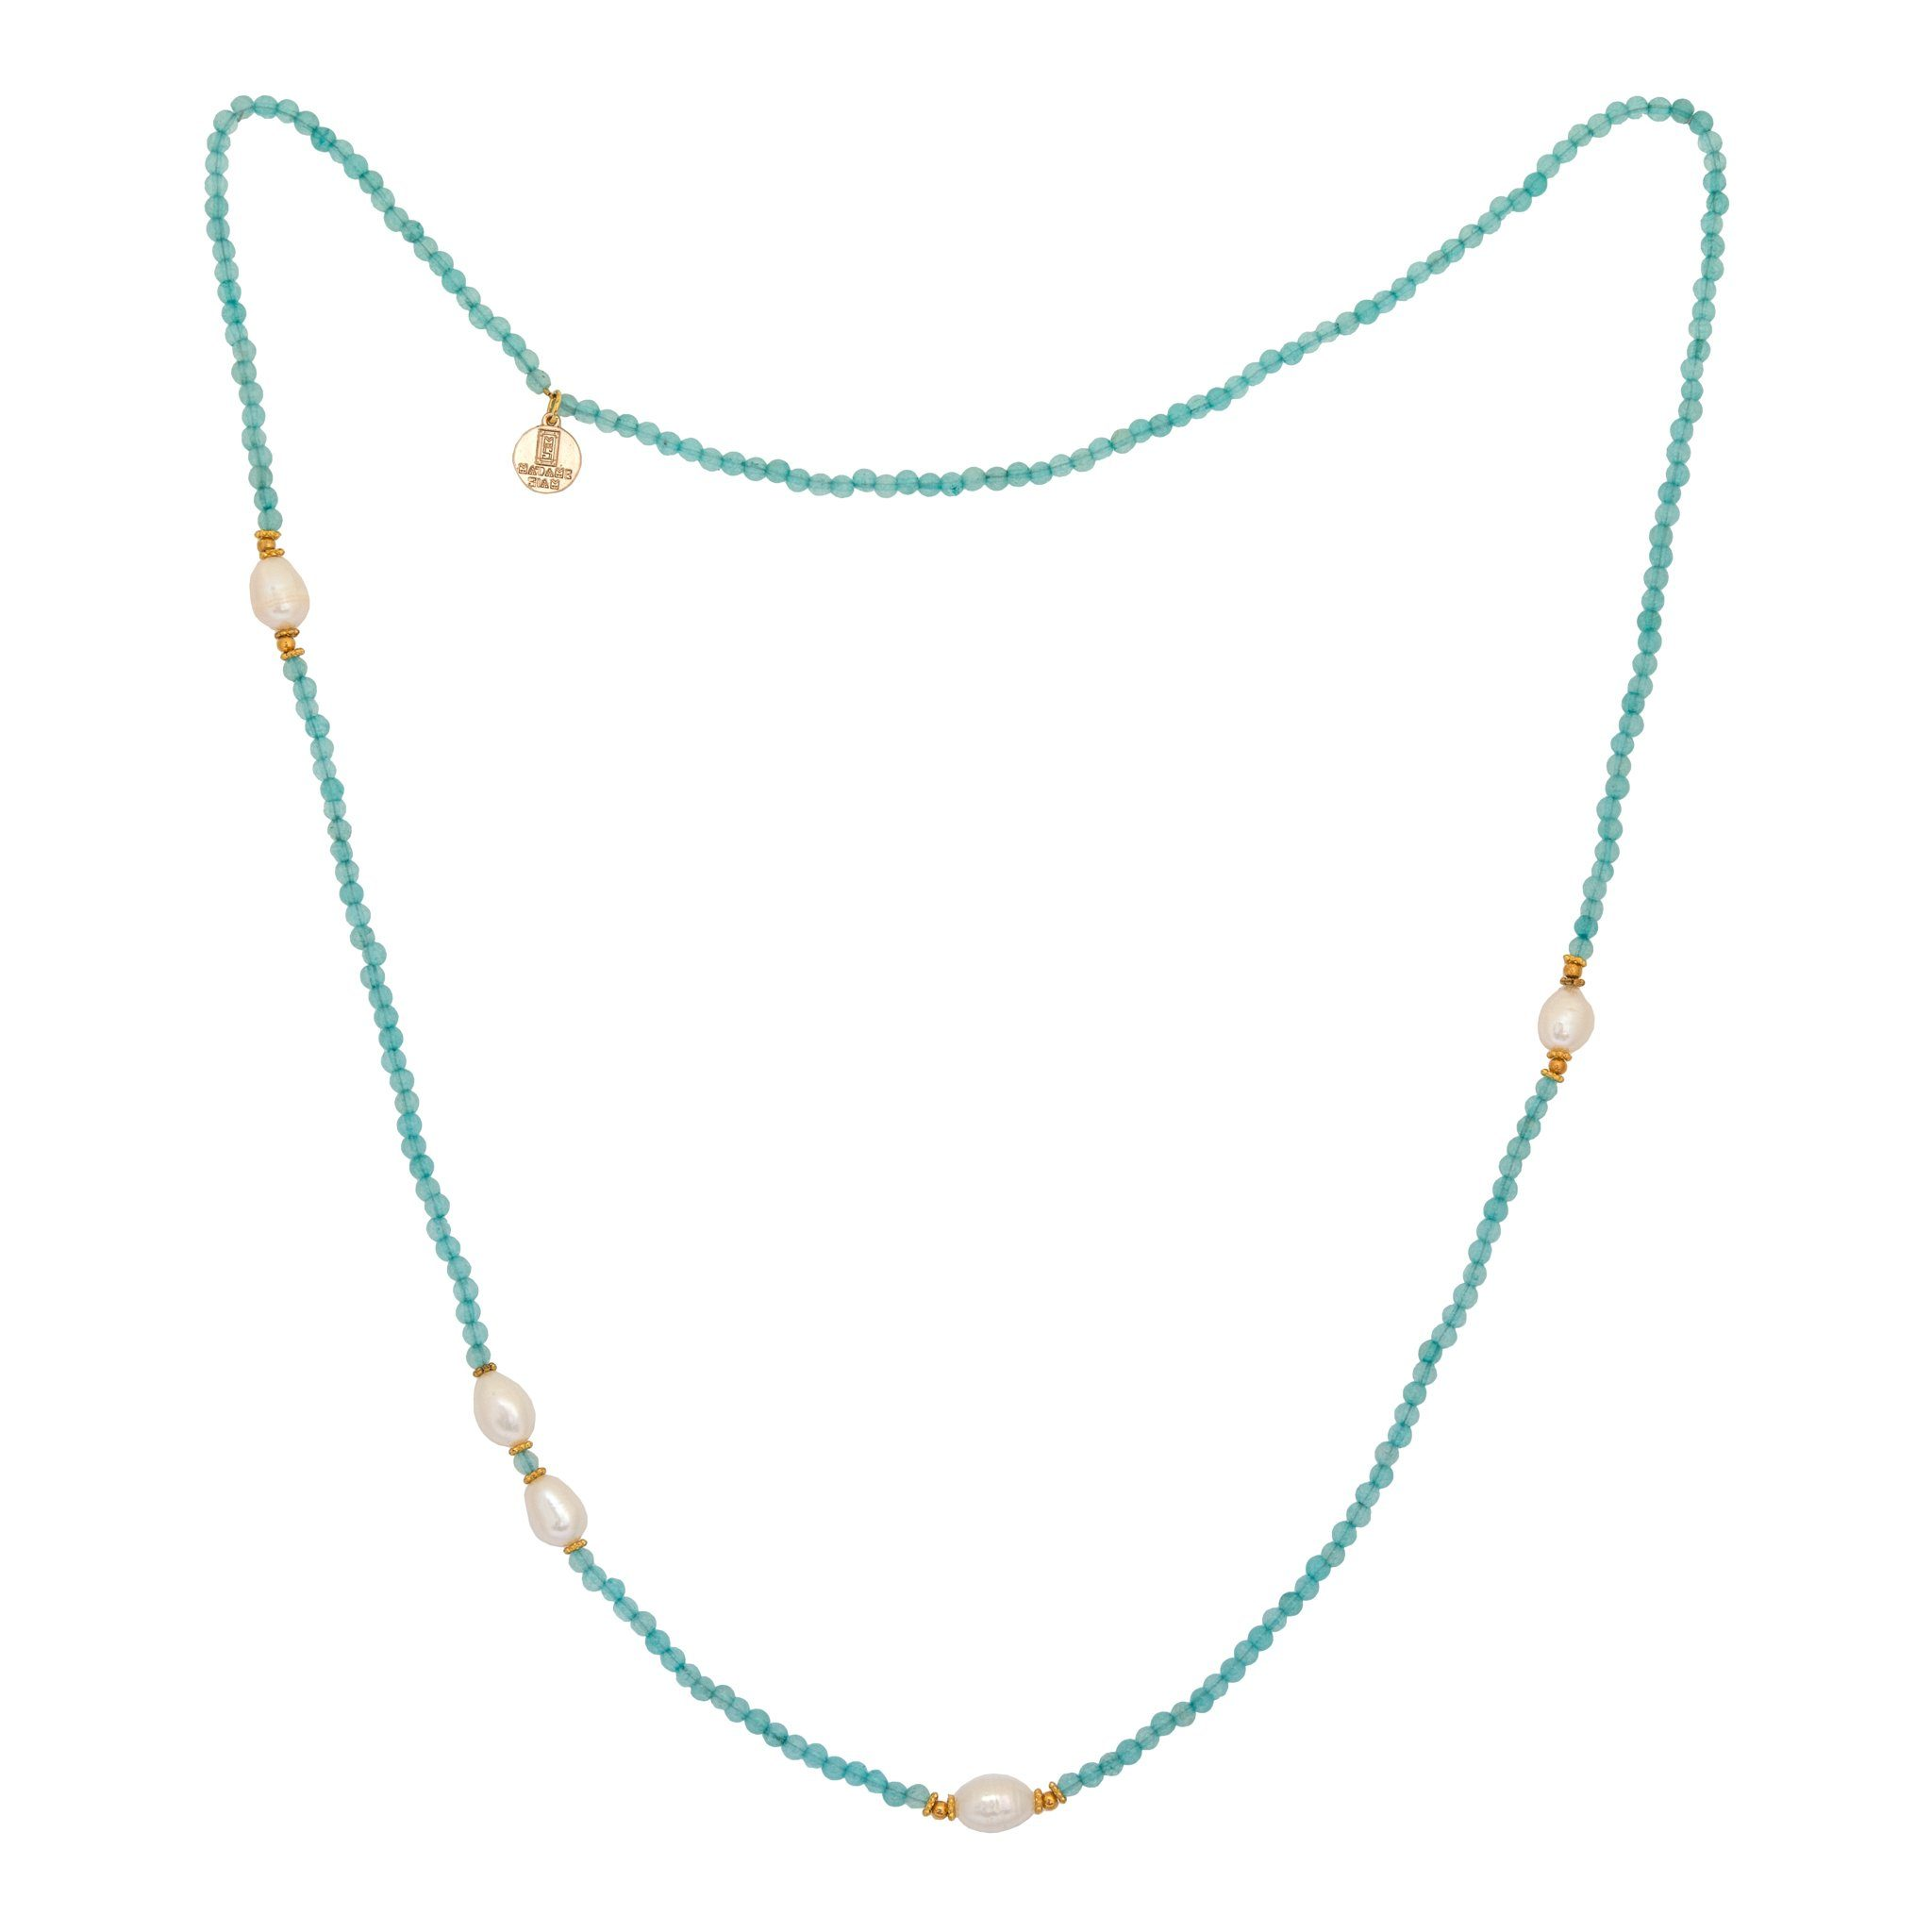 KIMUKA pearls and apatite necklace - MadamSiam